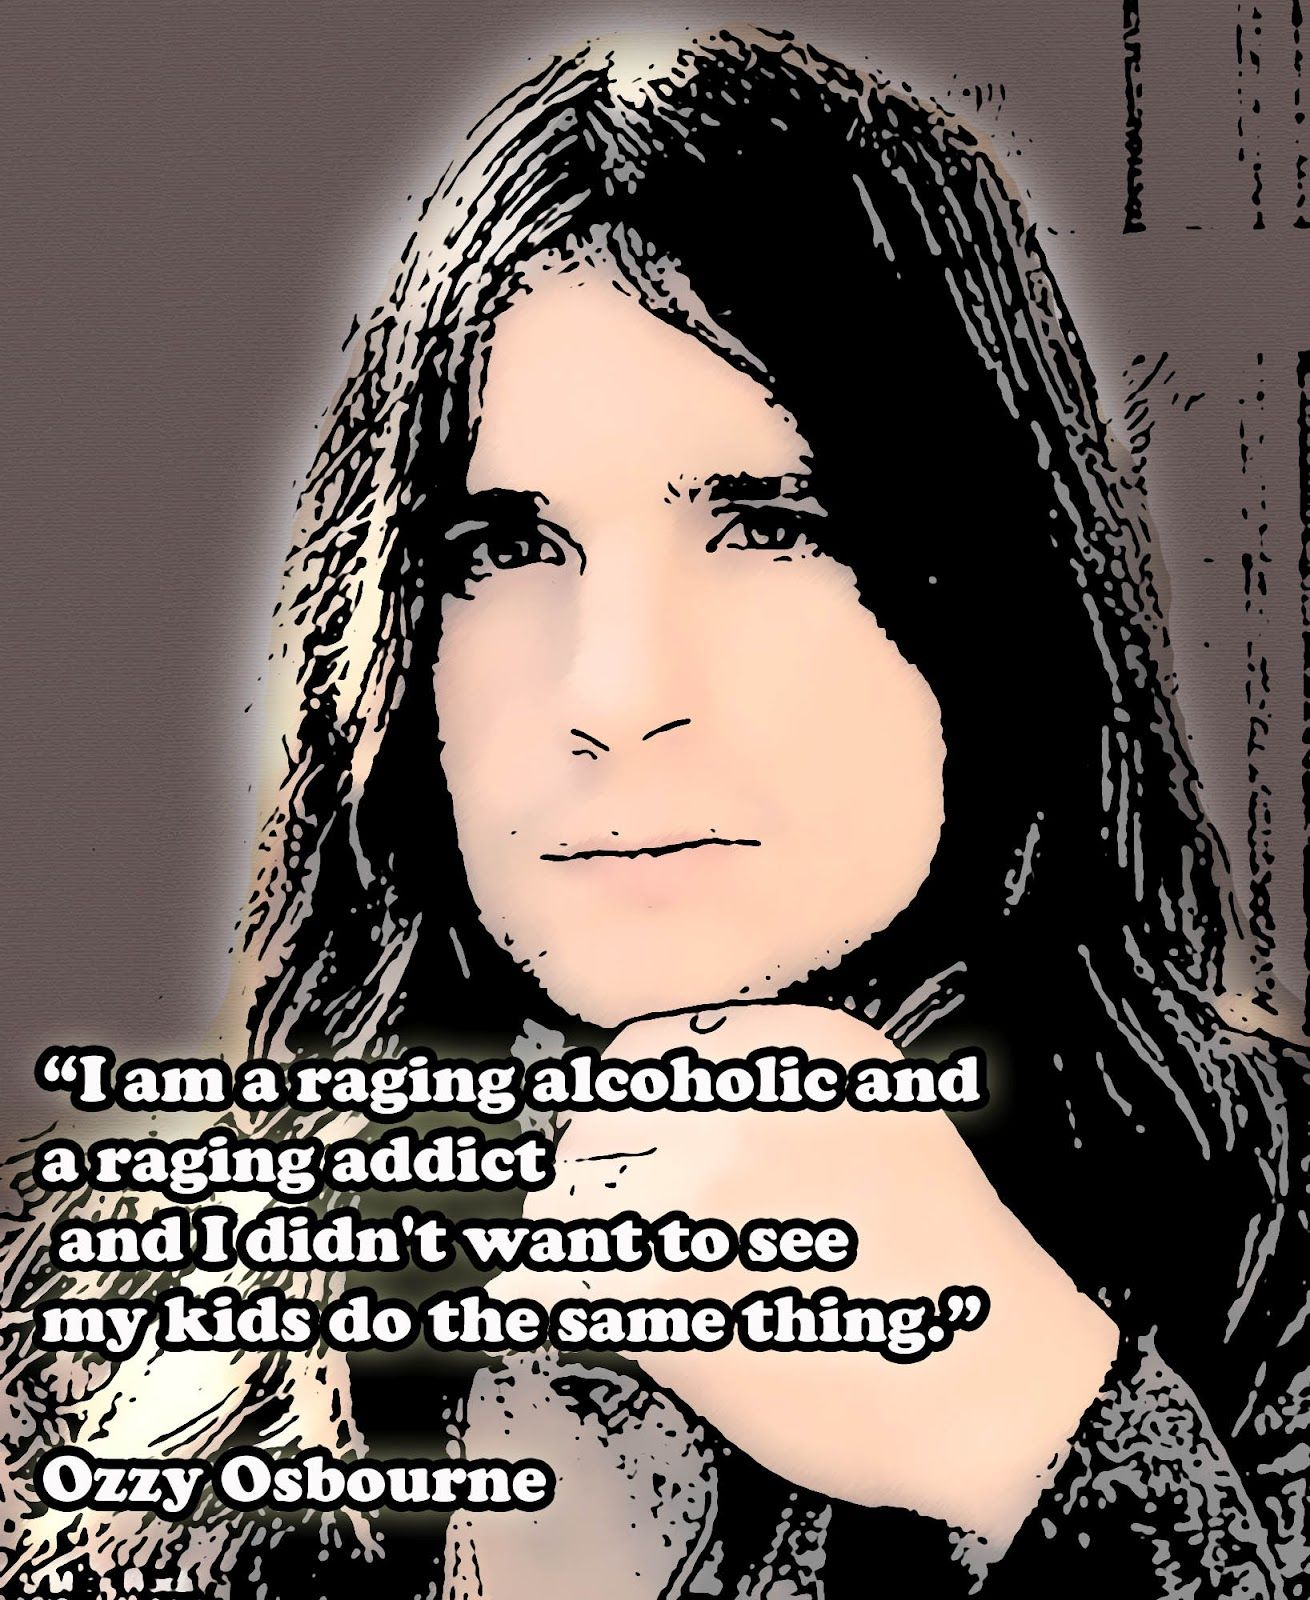 Ozzy Osbourne Song Quotes Ozzy Osbourne Quotes